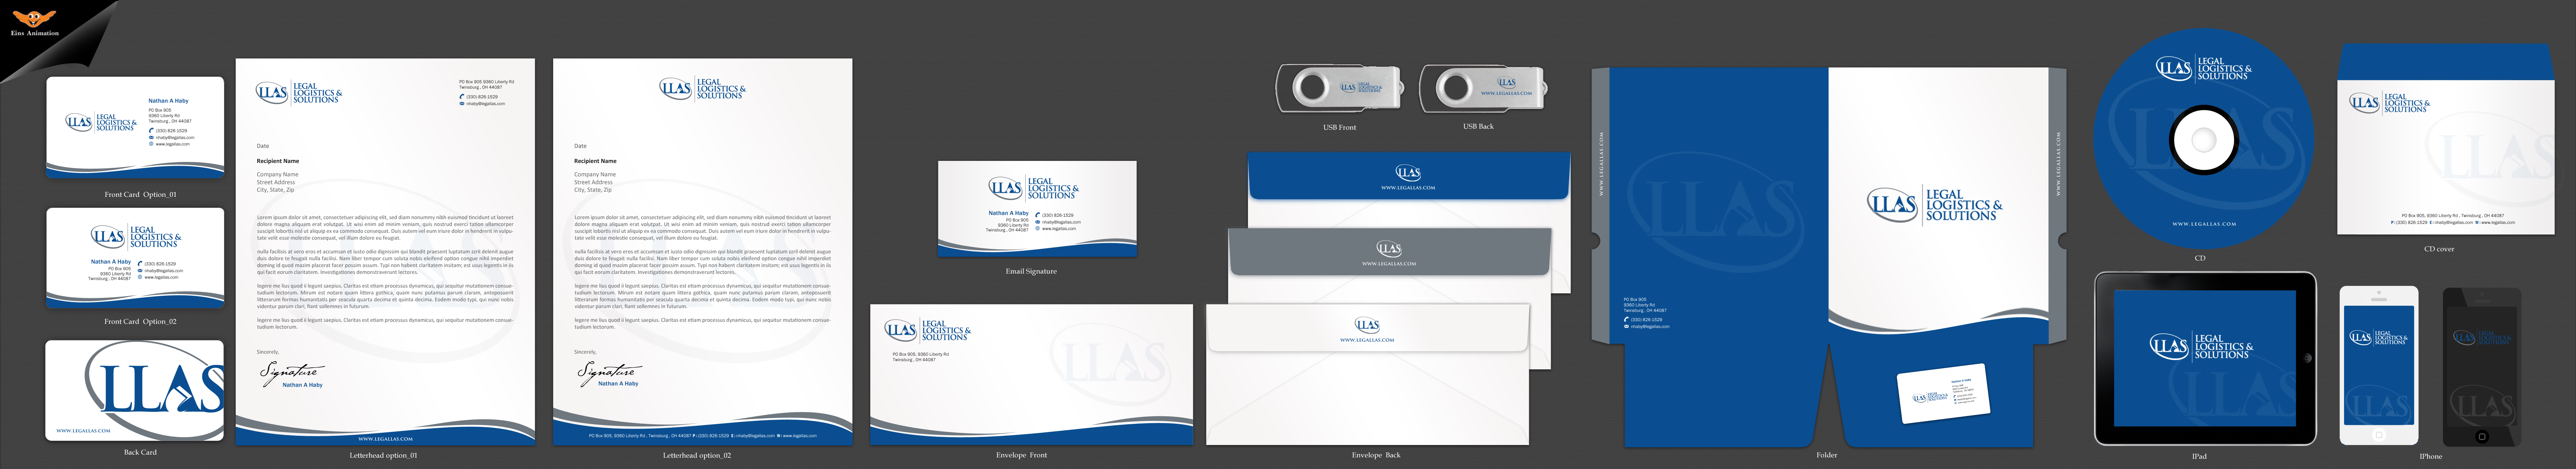 Stationary for a Legal Support Company - Marketing